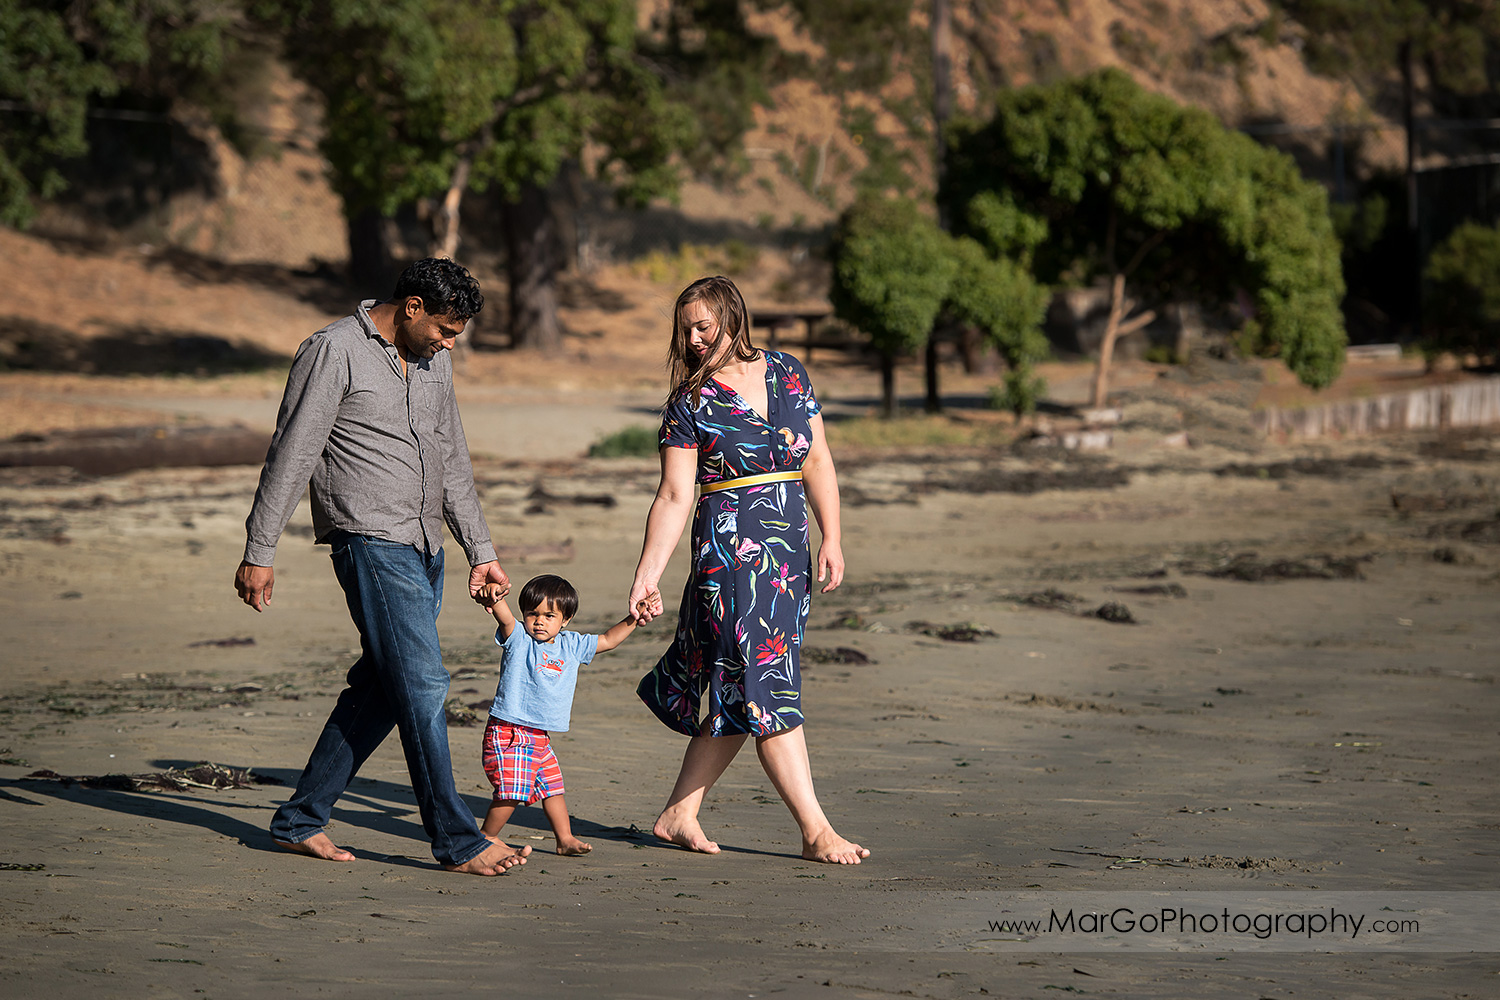 woman in blue dress with pink flowers, man in grey shirt and little boy in blue shirt and red shorts walking on the sand at Richmond Keller Beach